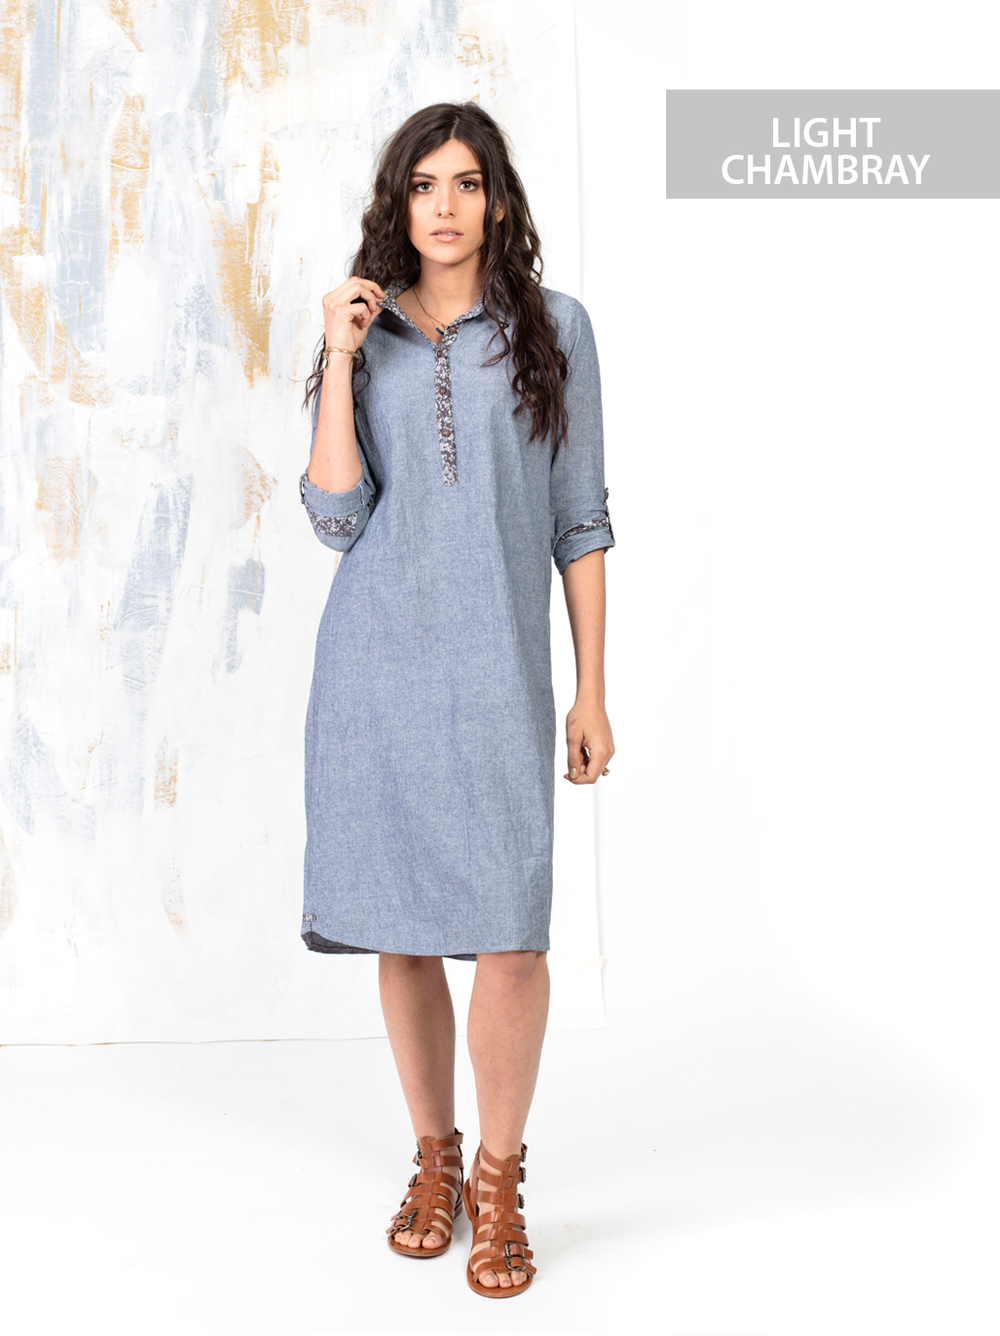 light chambray shirt dress.jpg